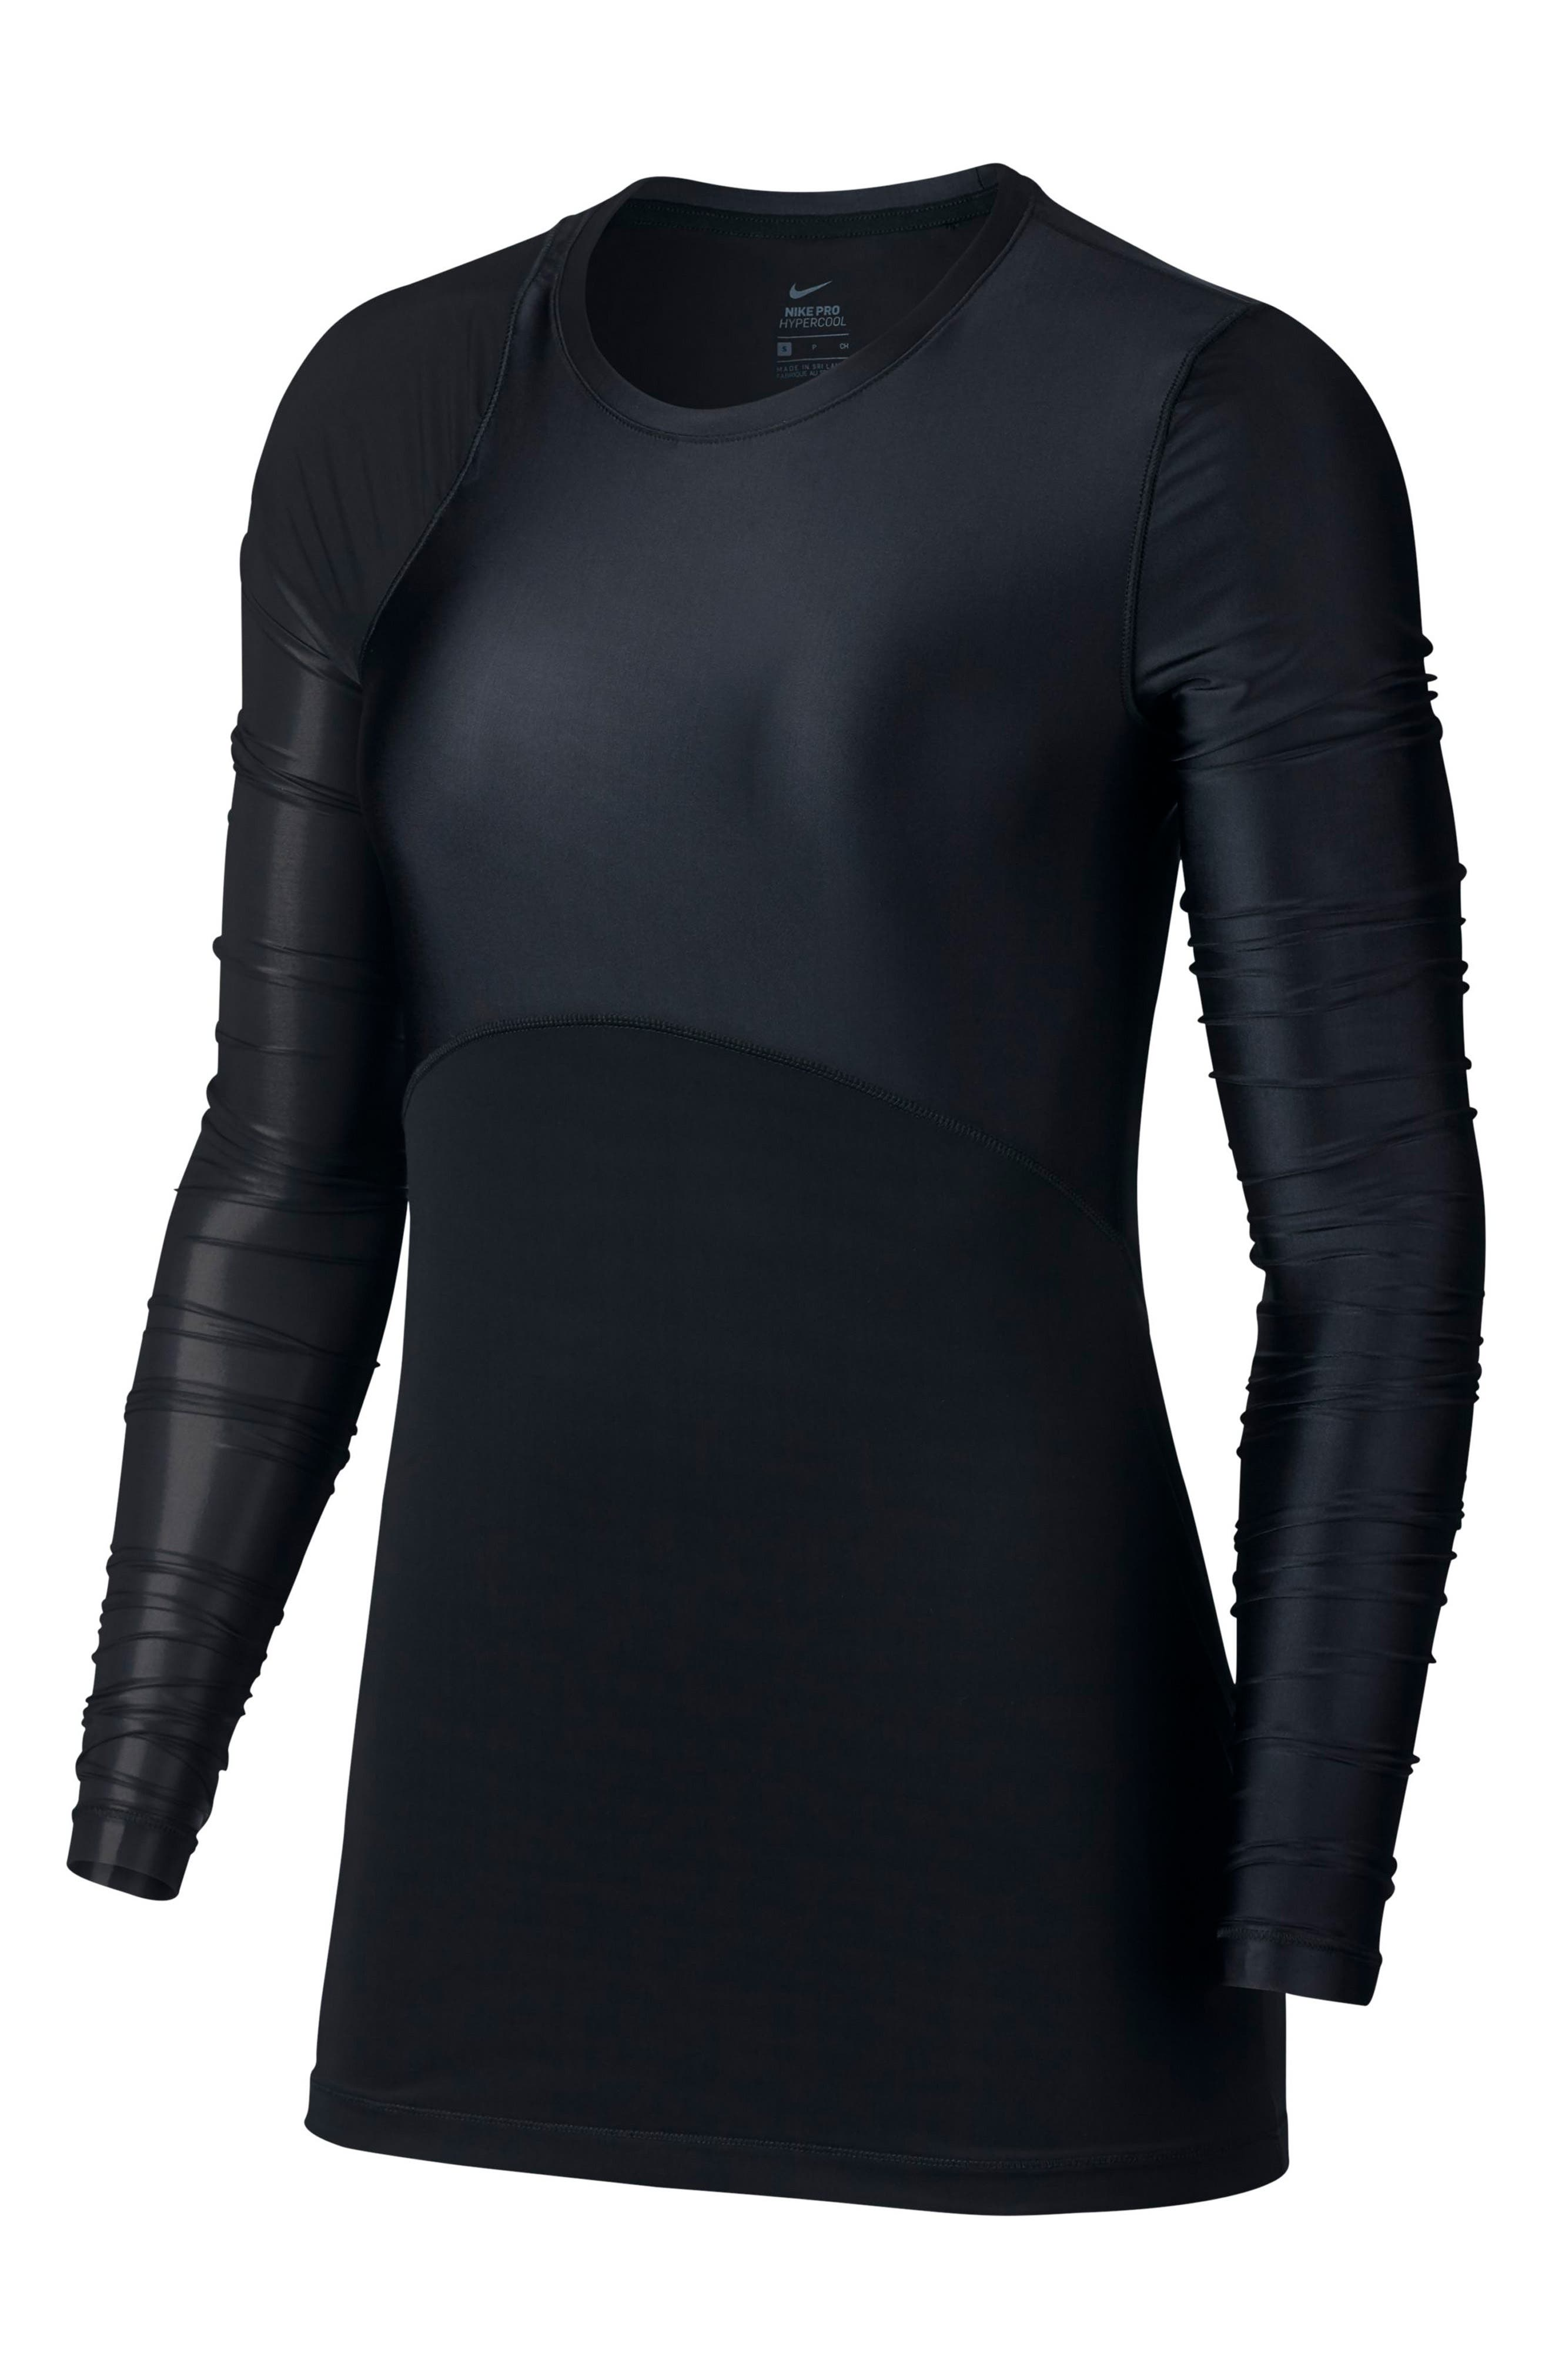 Pro HyperCool Glamour Tee,                         Main,                         color, 010